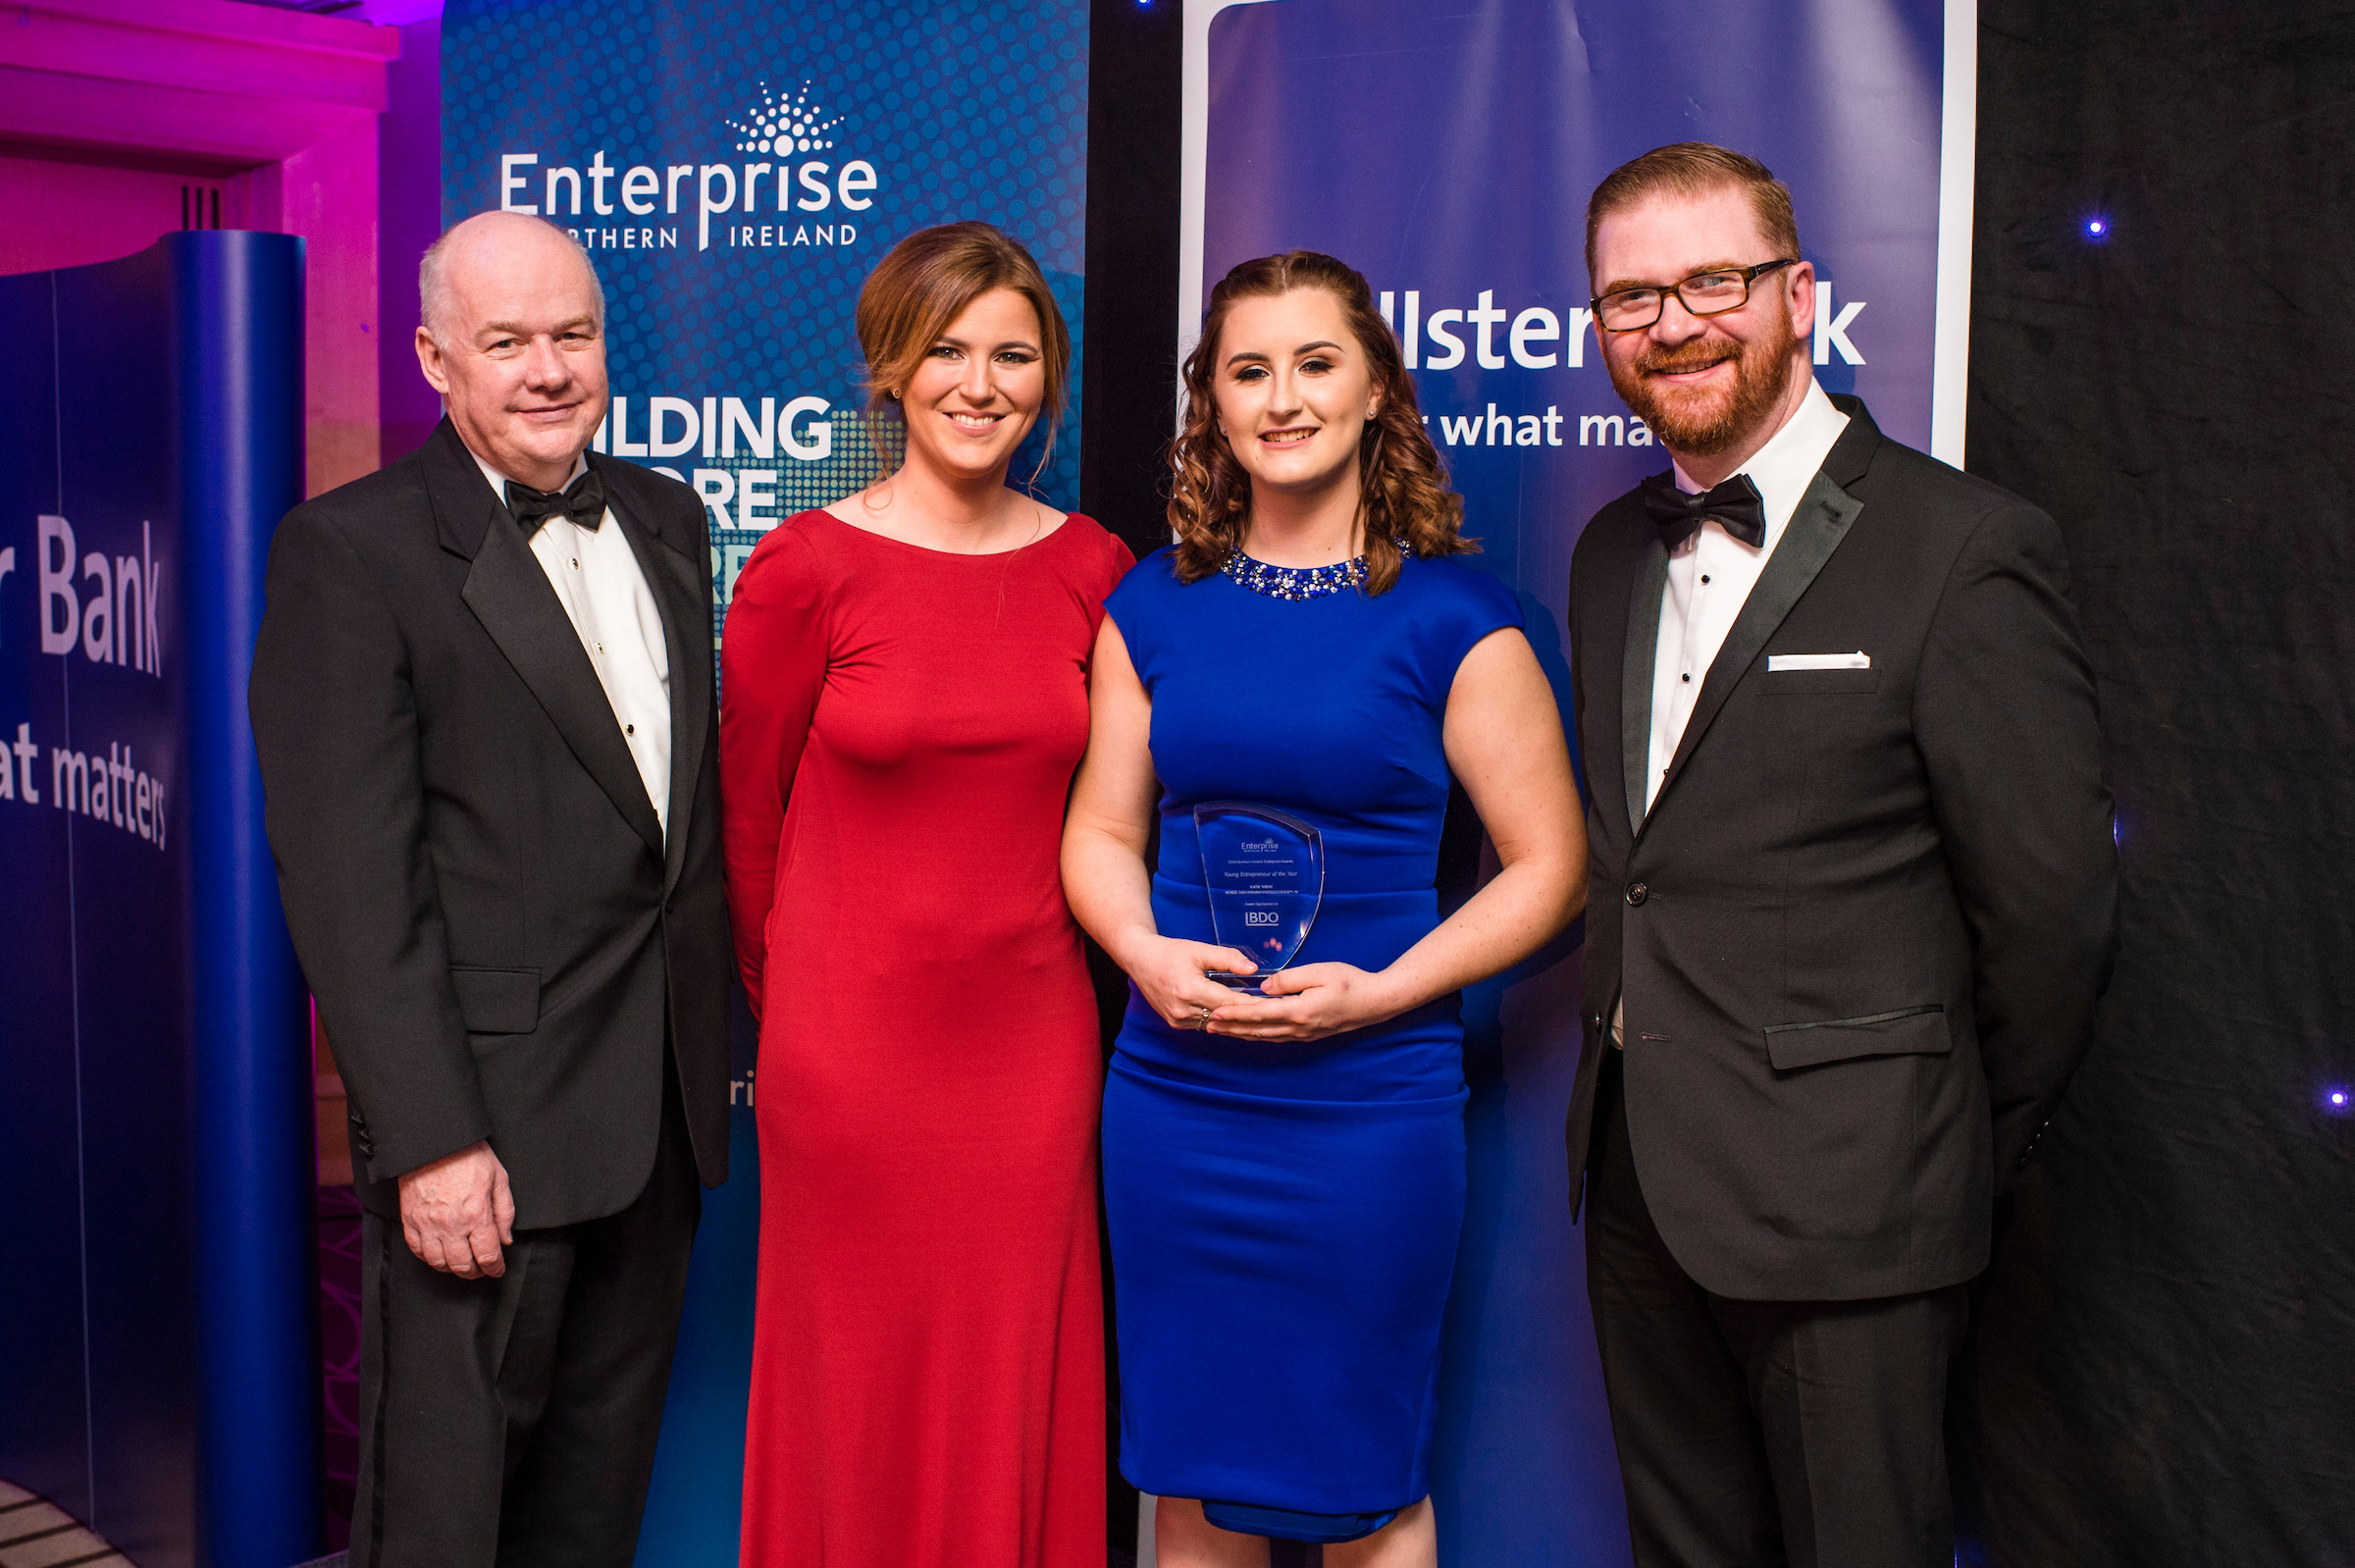 Horse physiotherapist wins NI Young Entrepreneur of the Year